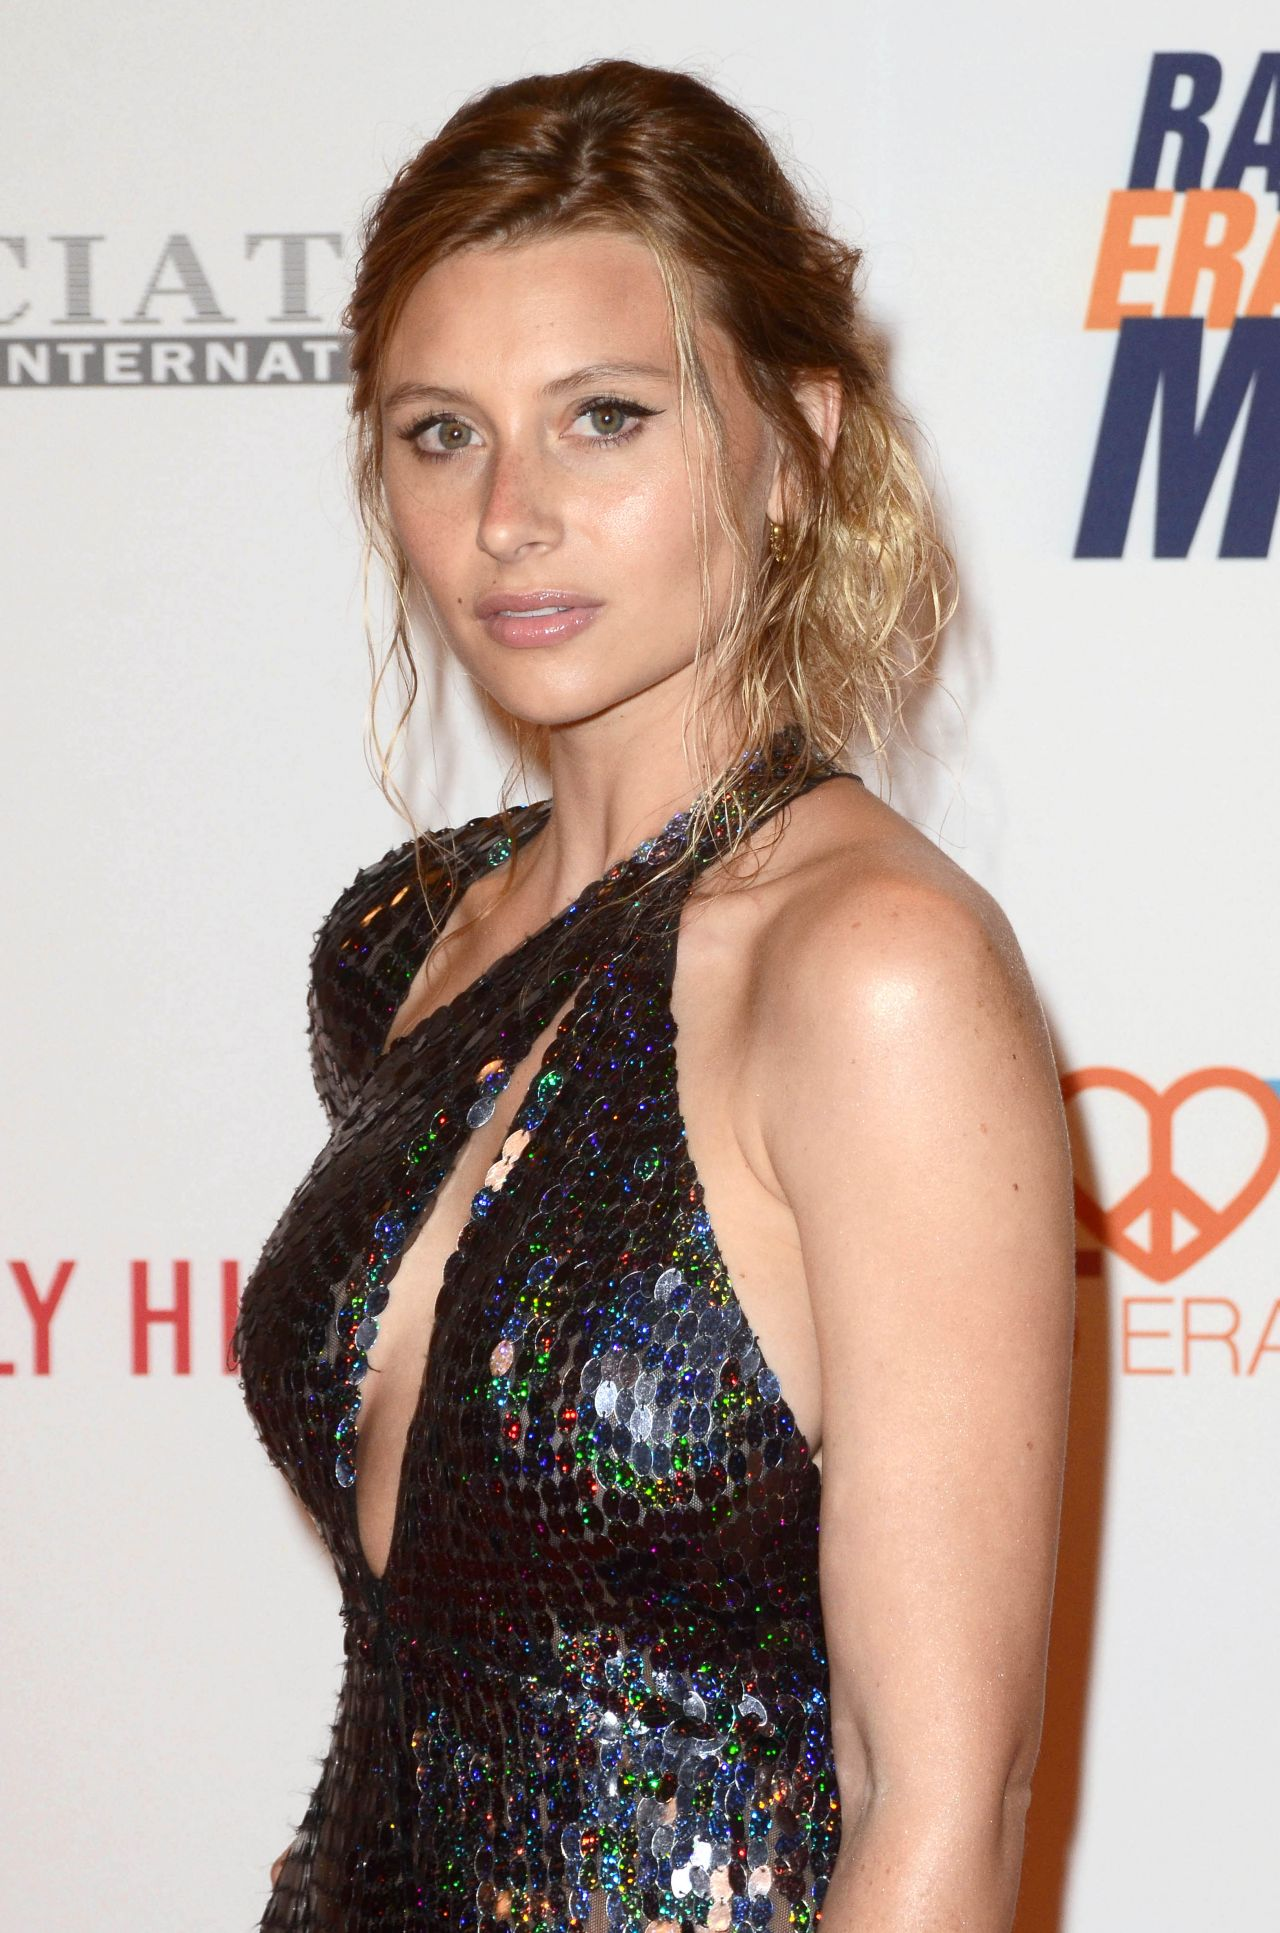 Alyson Michalka nude (71 photos), Topless, Cleavage, Twitter, see through 2006